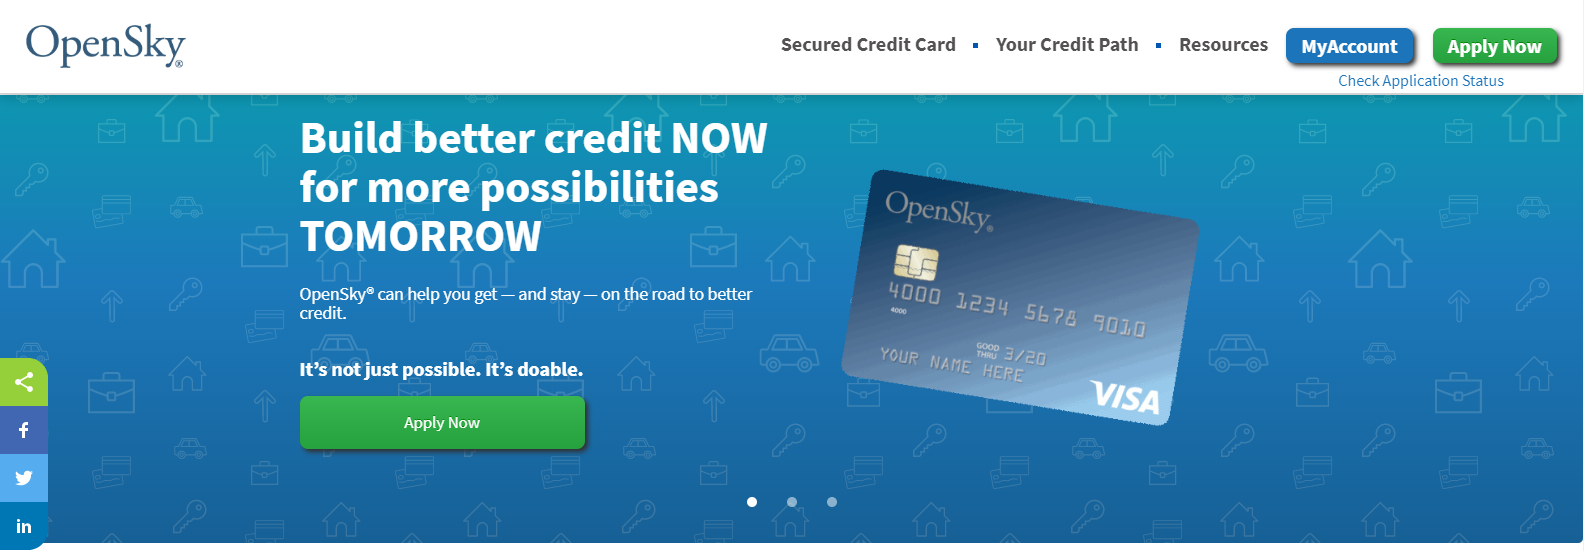 opensky home page